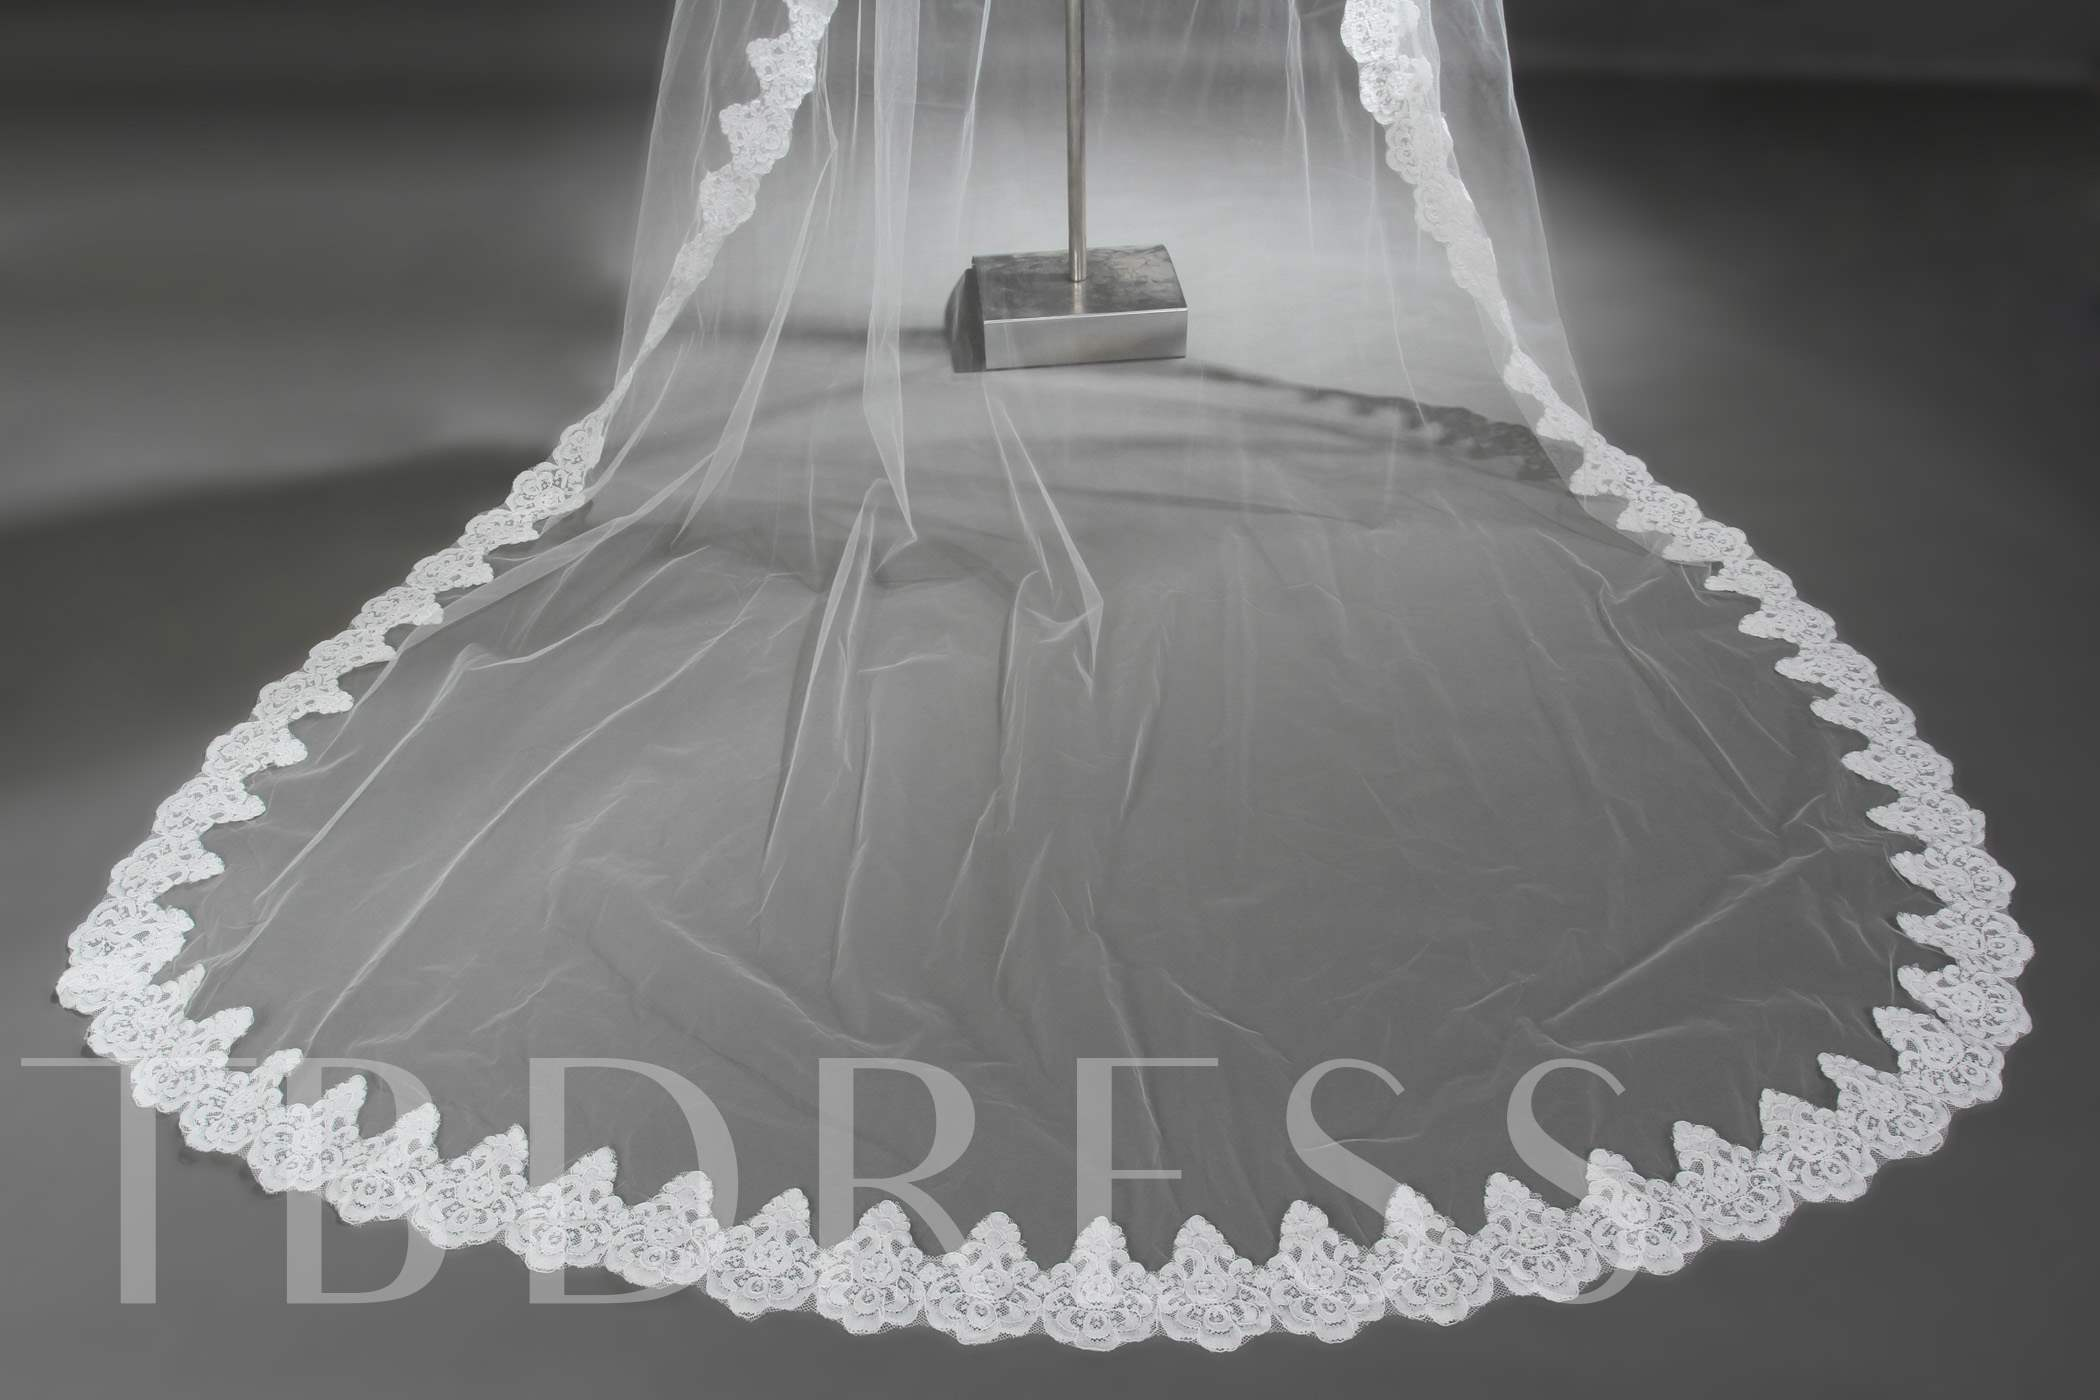 Wedding veil one tier cathedral veils lace applique edge tulle